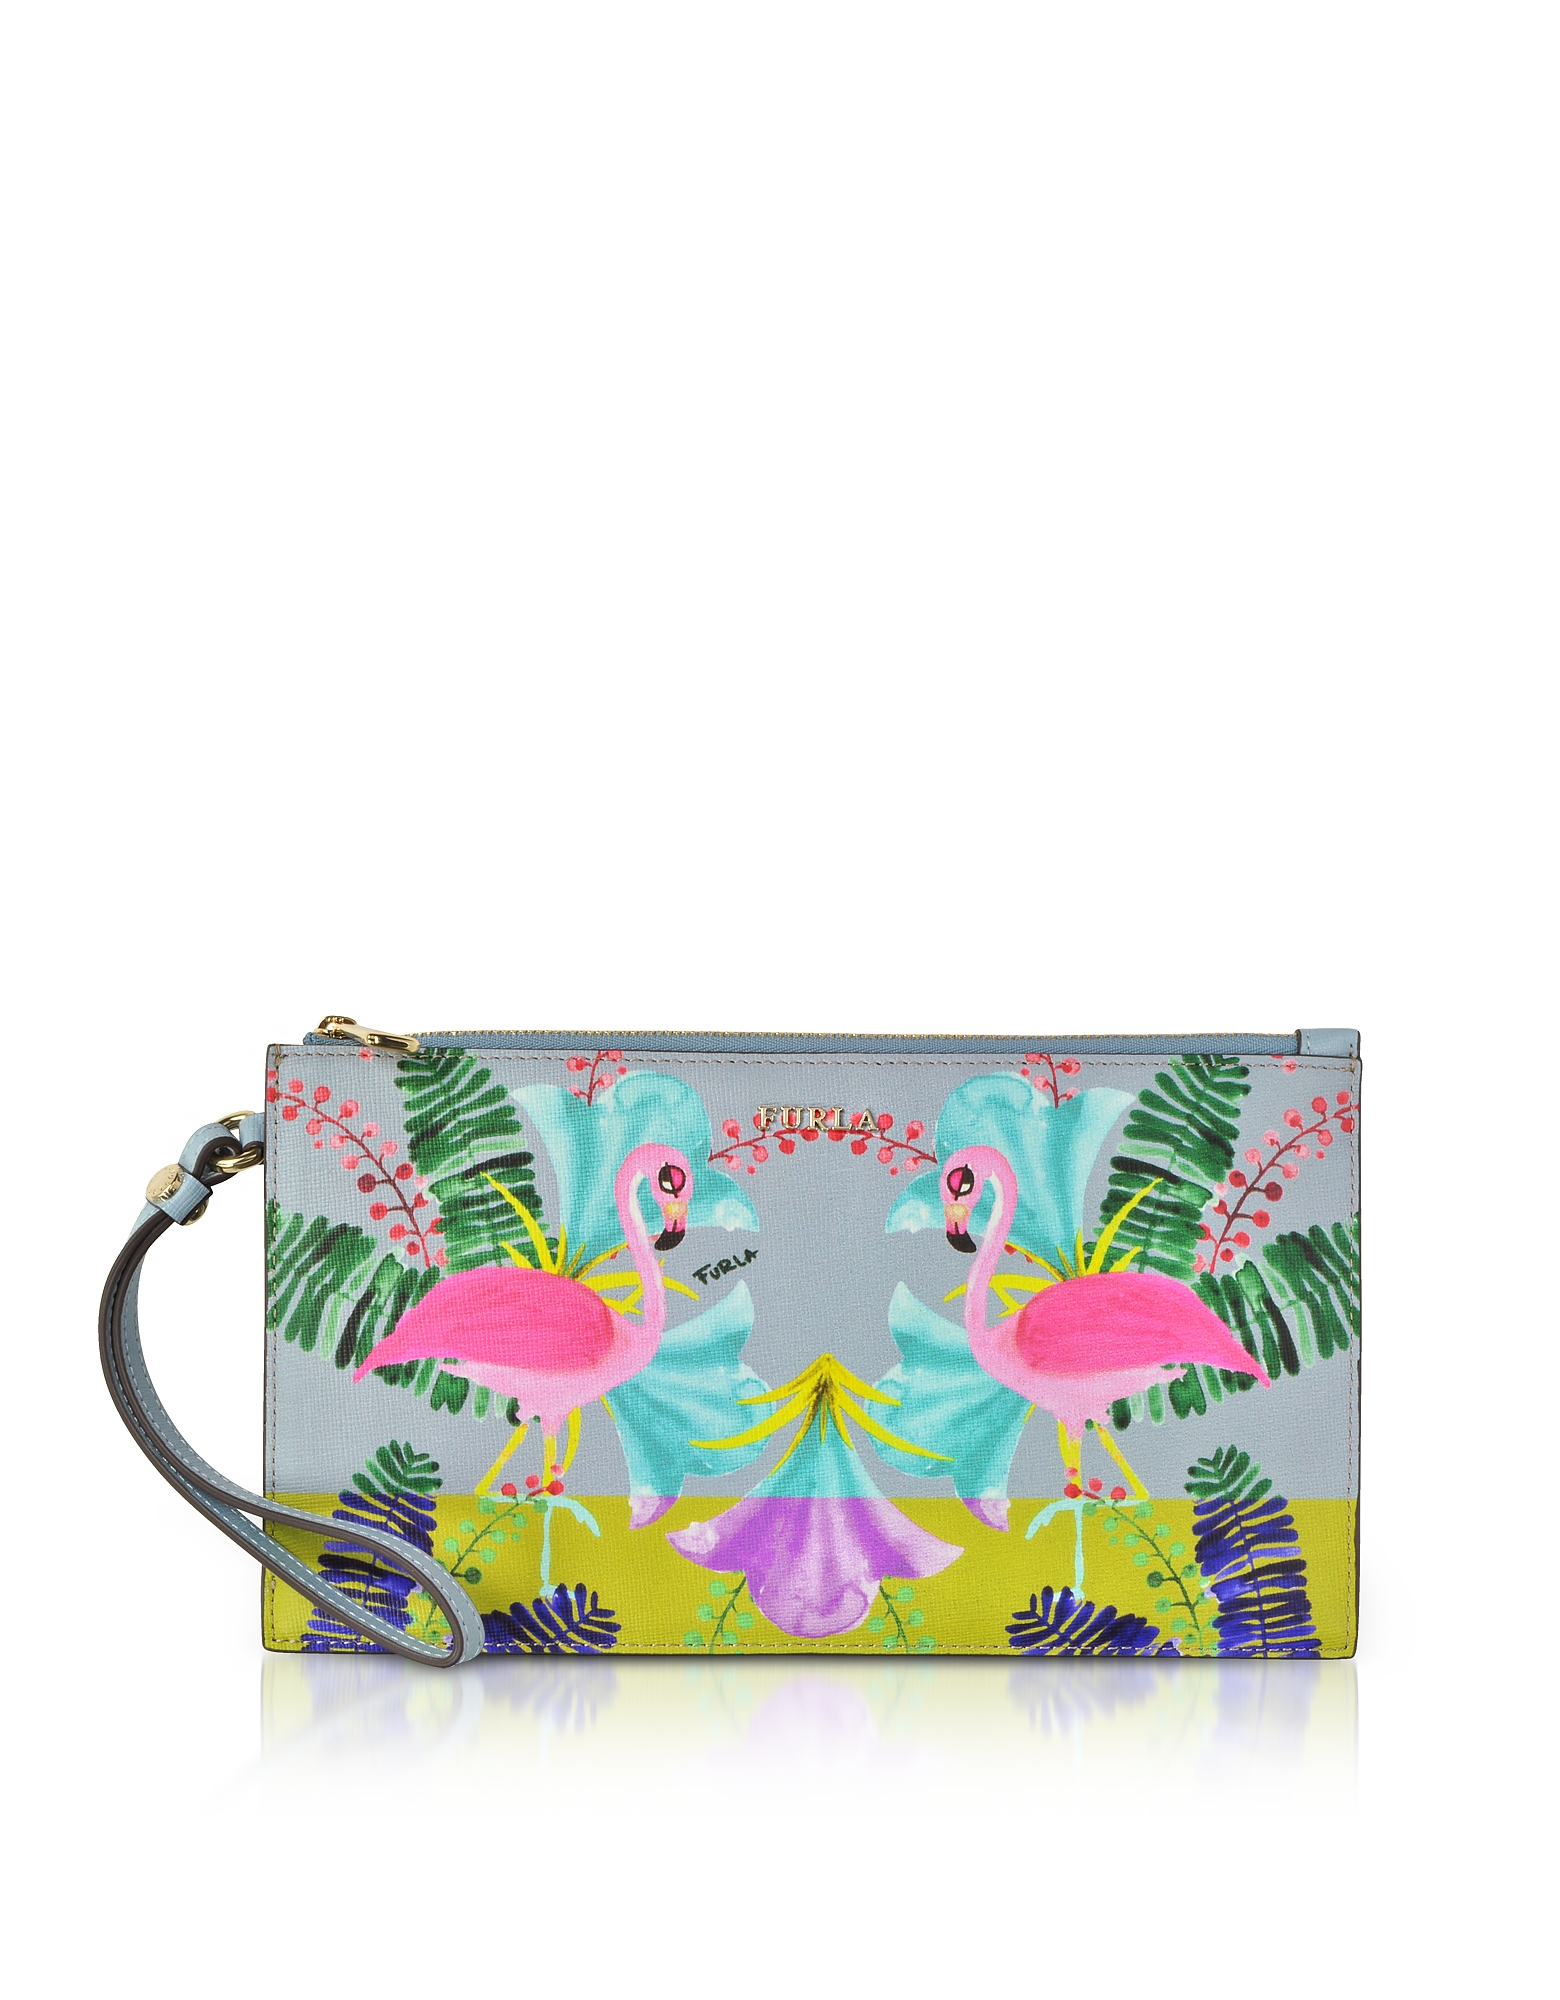 Furla Handbags, Flamingo Printed Toni Fiordaliso Saffiano Leather Babylon XL Envelope Clutch